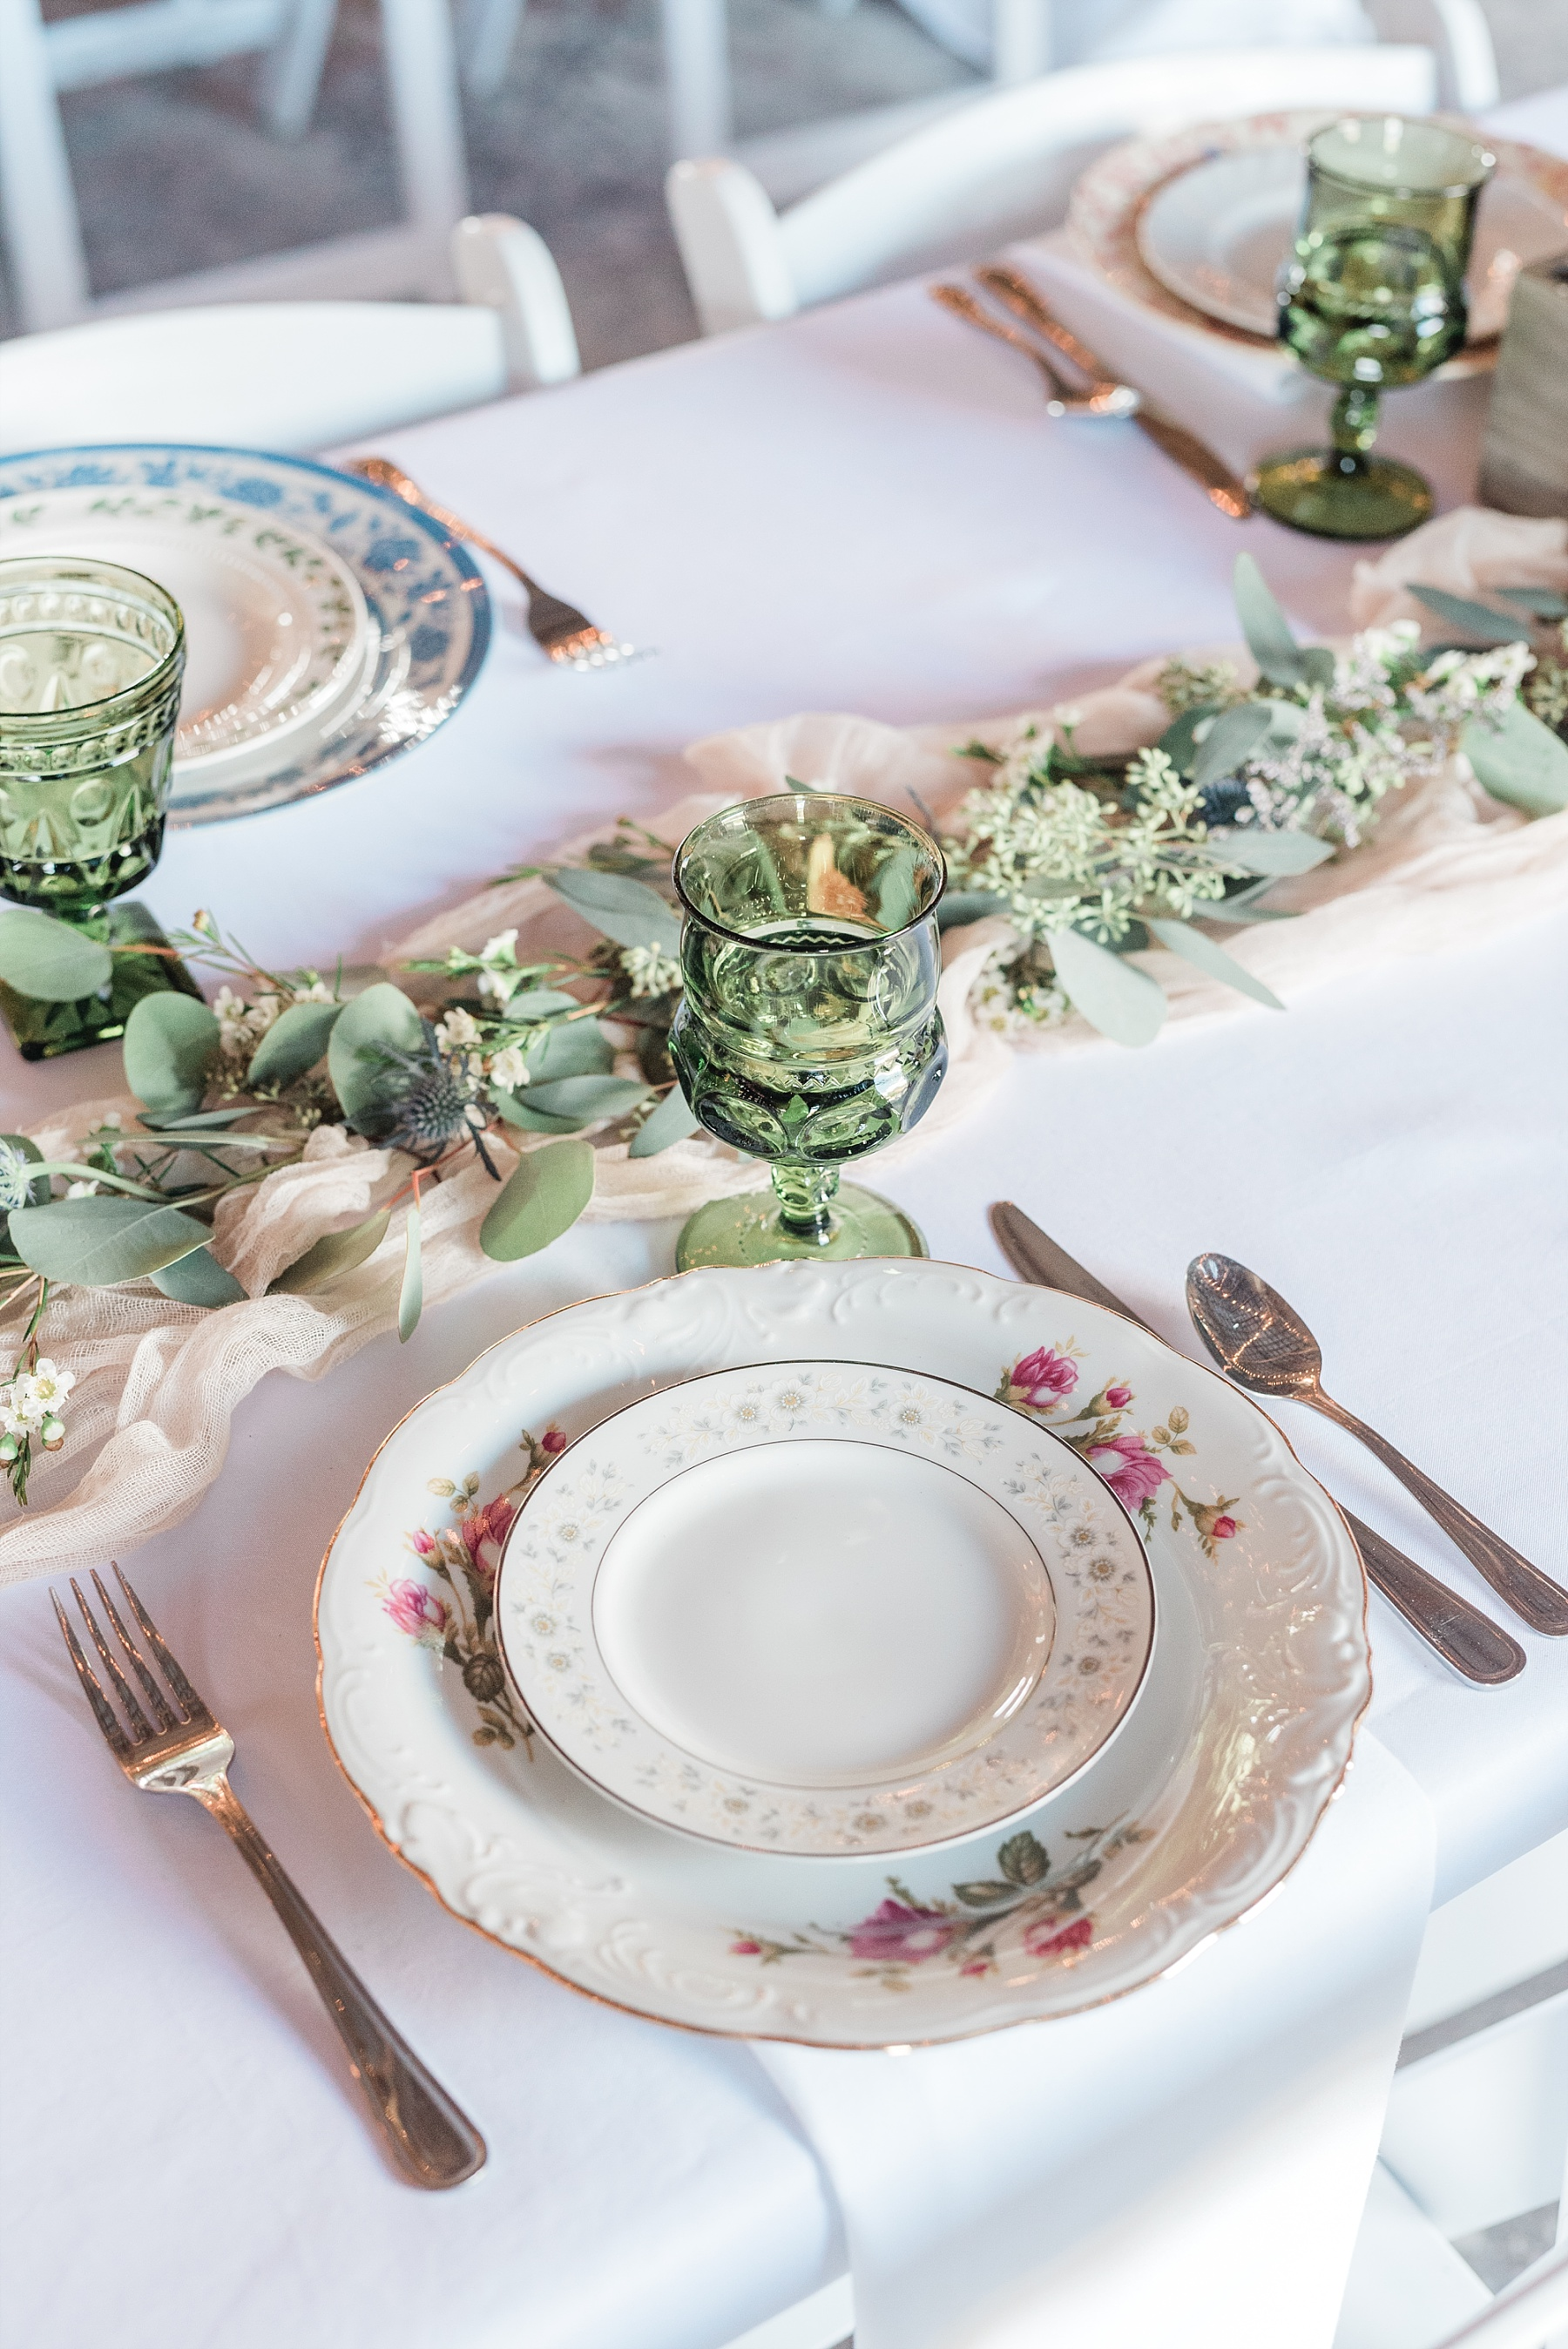 Fine Art Sunset Themed Wedding in Autumn at Dodson Orchards by Kelsi Kliethermes Photography_0040.jpg